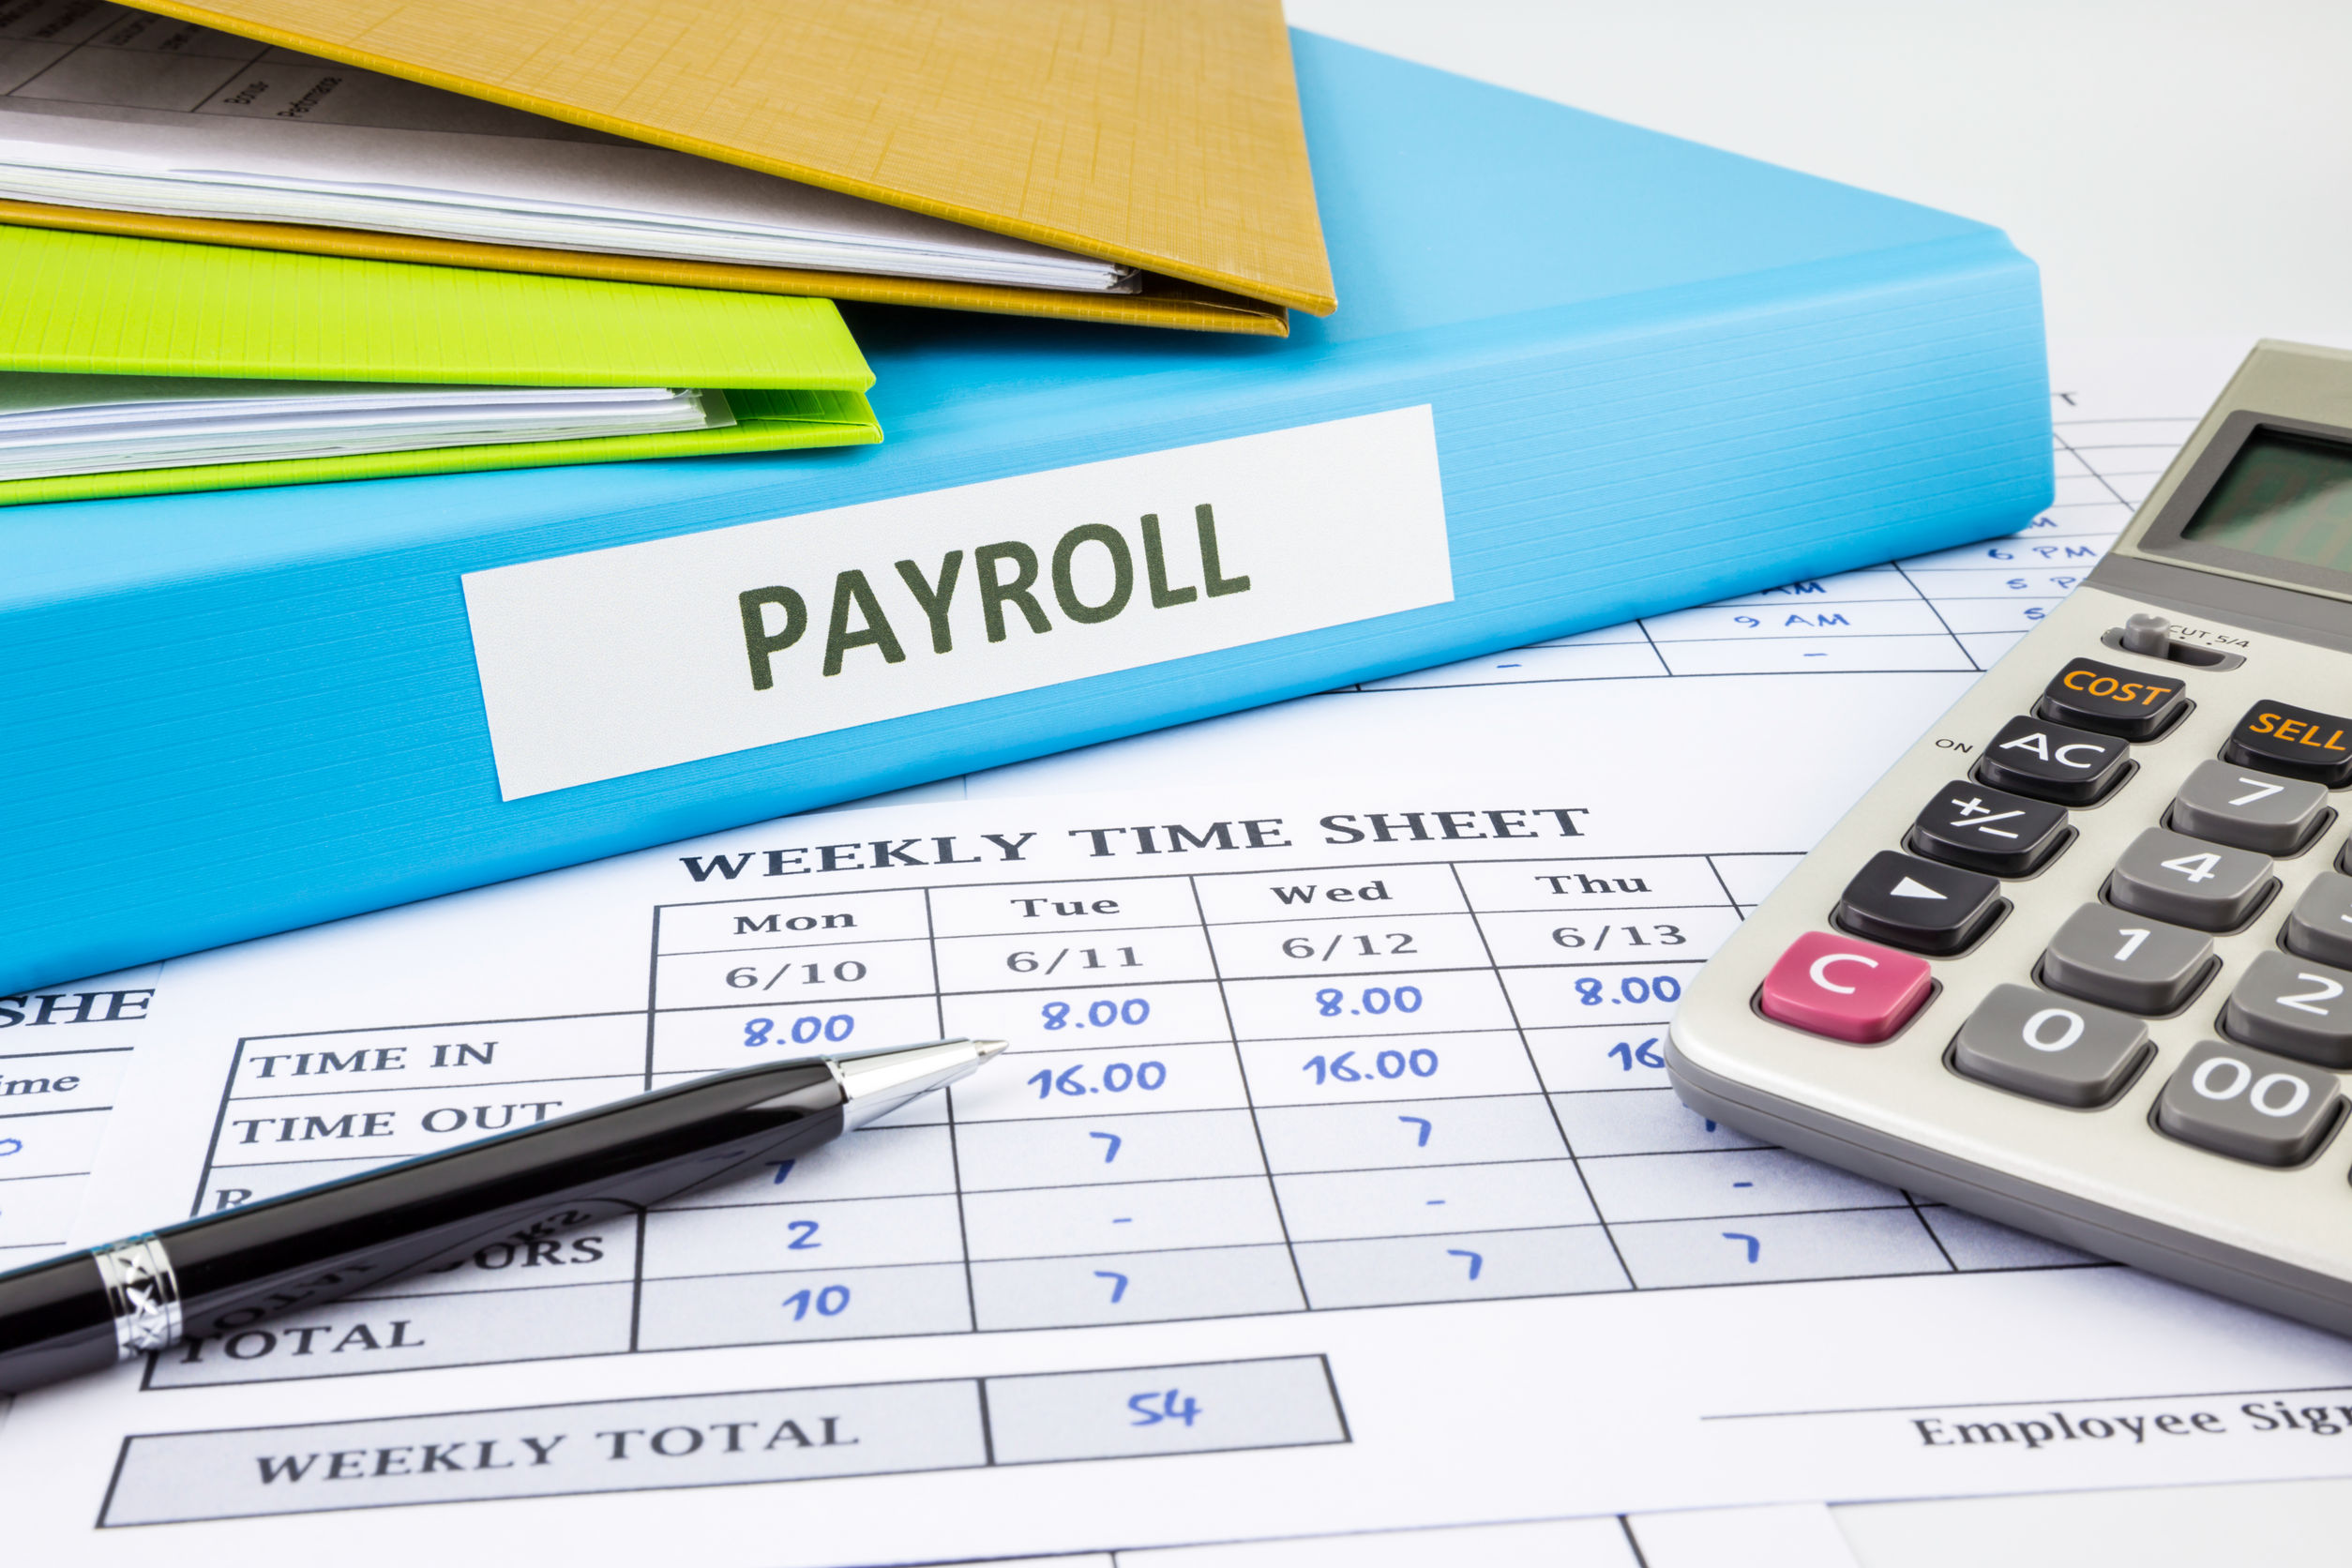 Getting paid correctly and on time